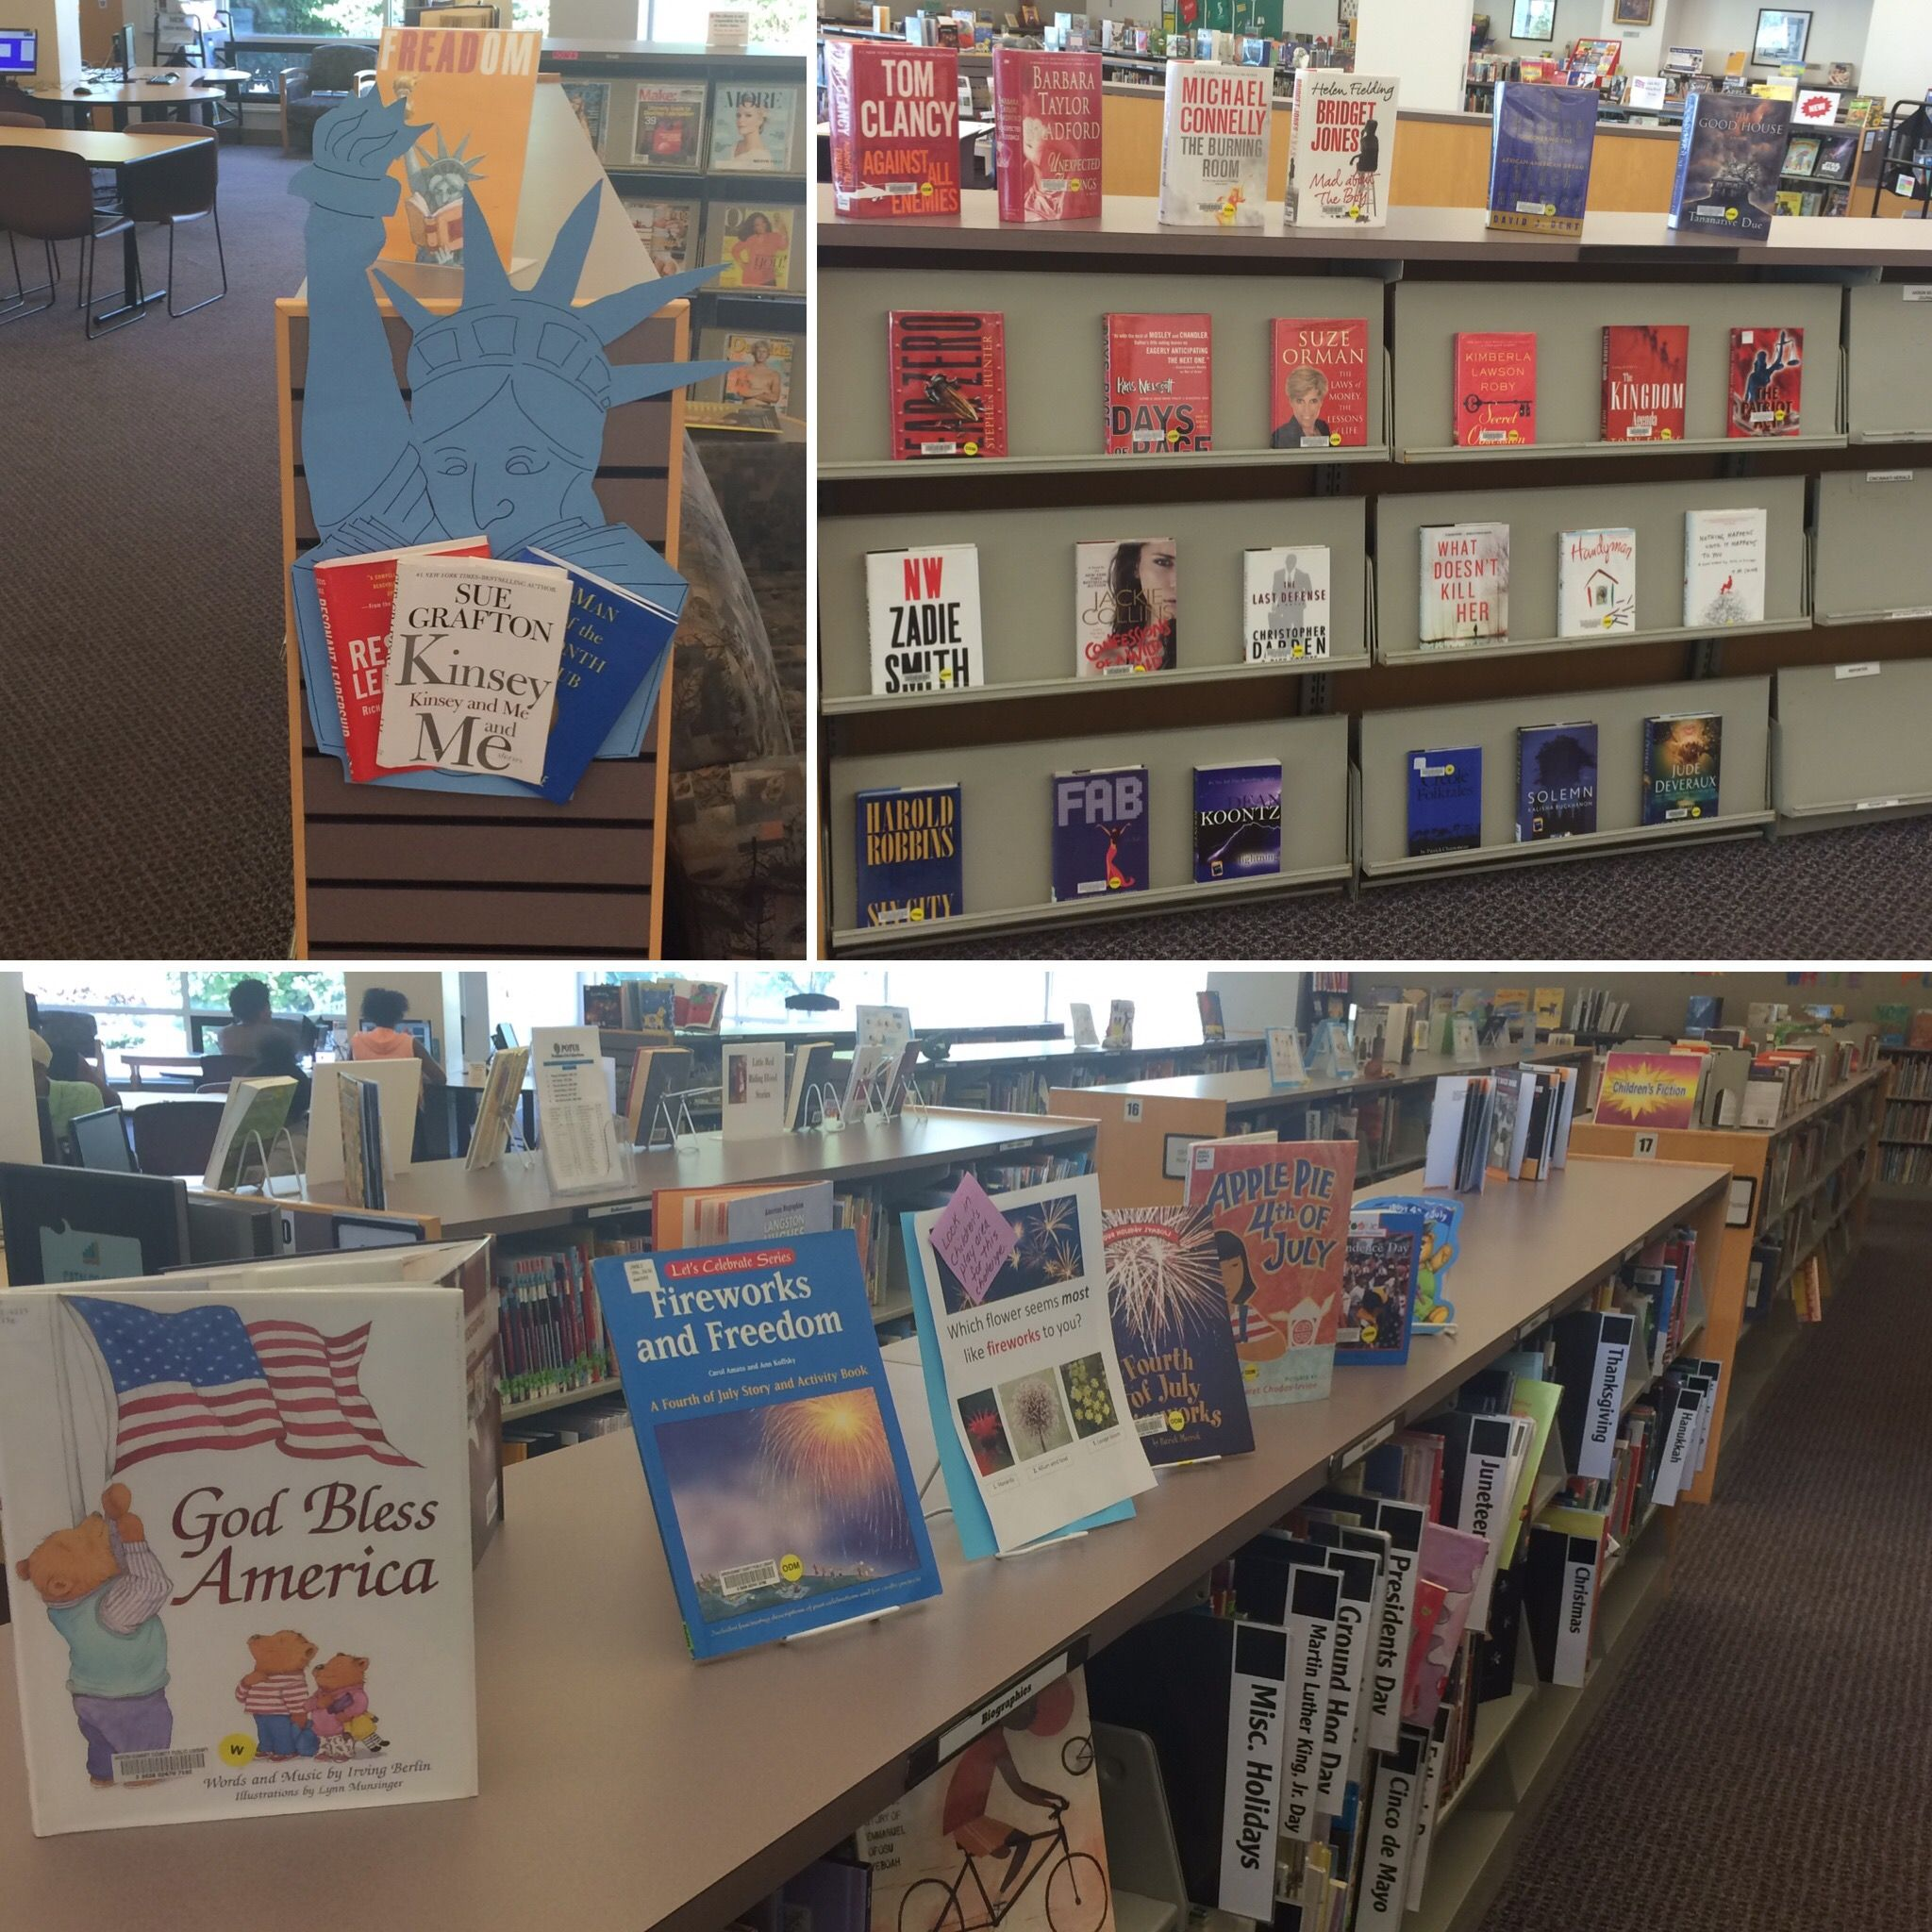 Independenceday July4 Books Bookdisplay Library Display Book Display God Bless America Books